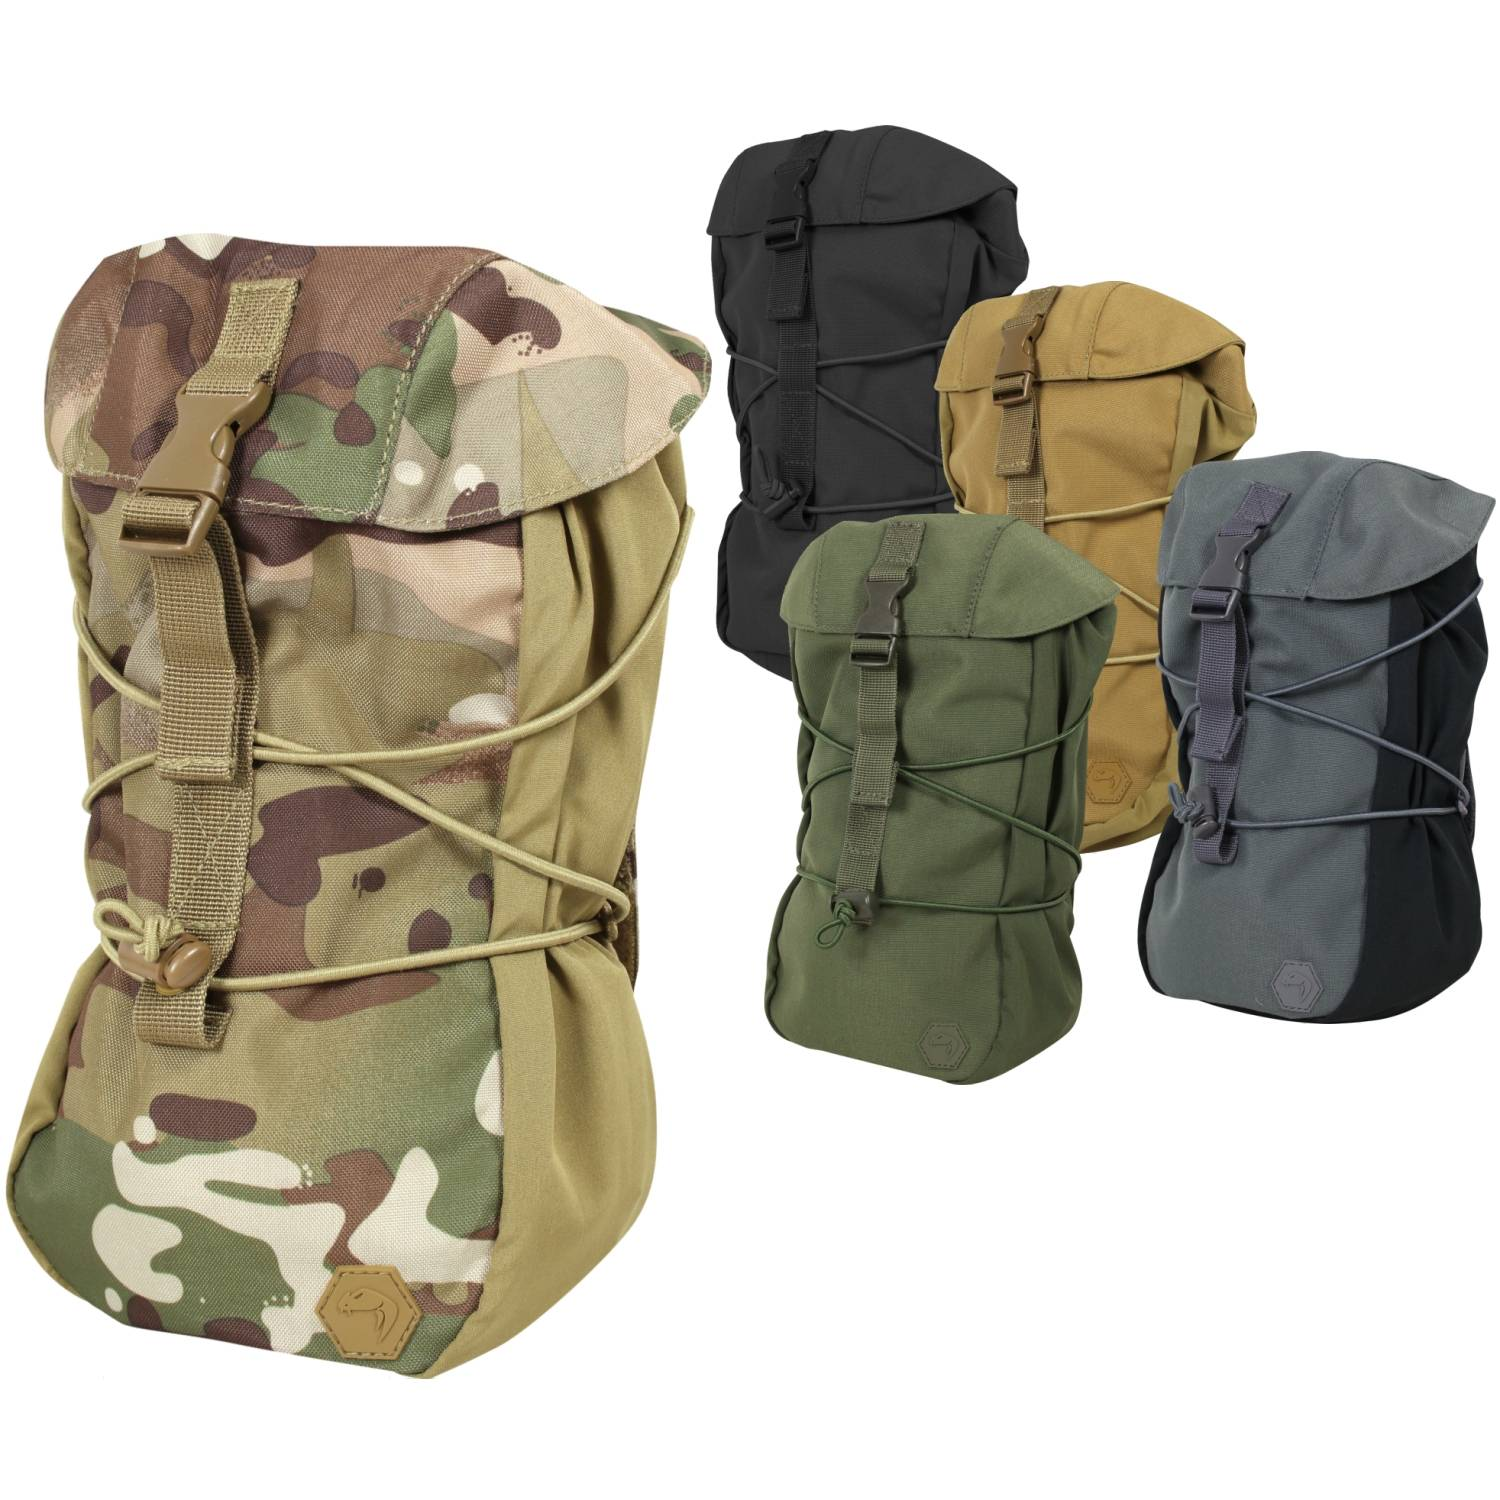 Viper Tactical Stuffa Pouch | MOLLE Utility Bag on